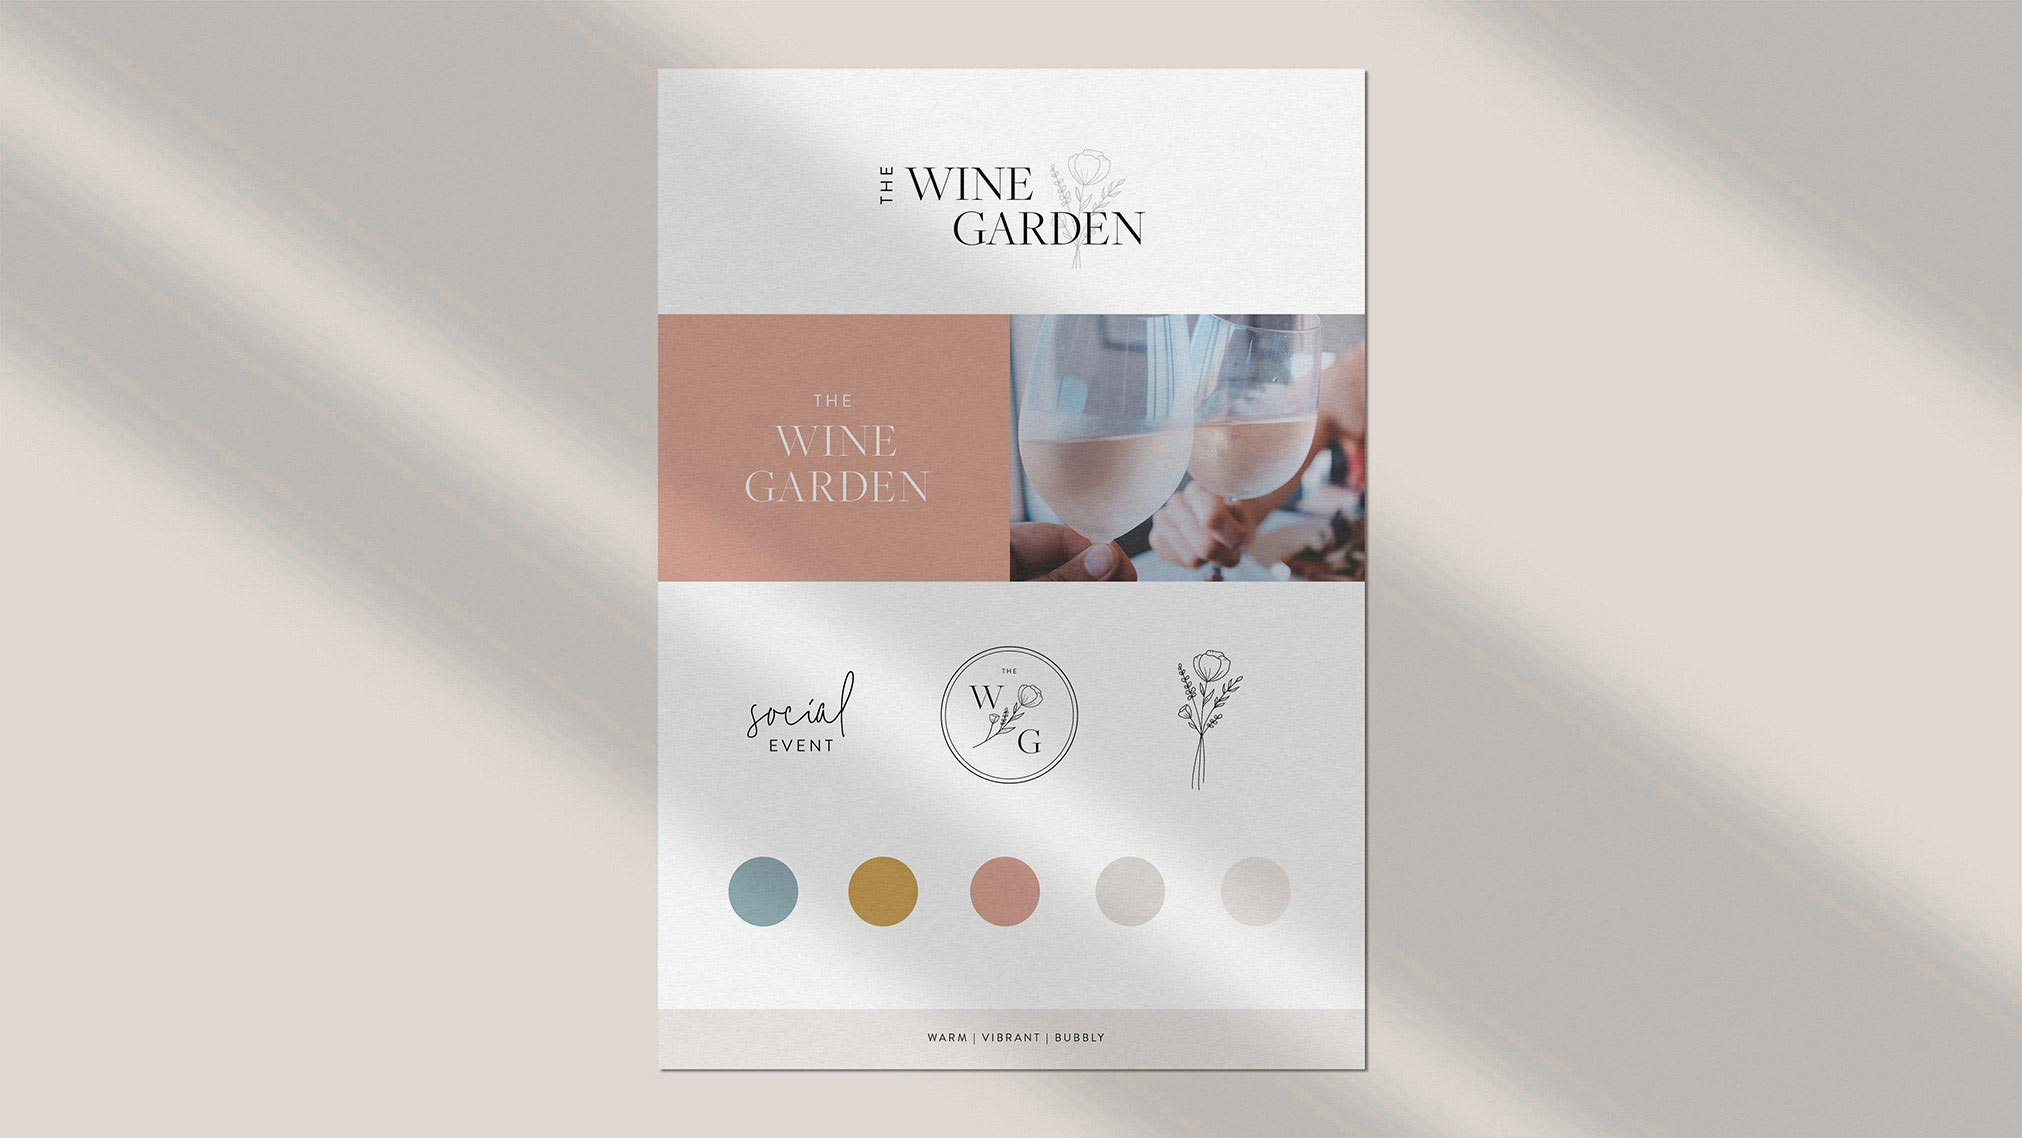 A vibrant & bubbly brand was designed for this wine tasting experience along with a web design that was developed to improve the event's online presence. Creative direction was also given for social media accounts and any promotional packaging.